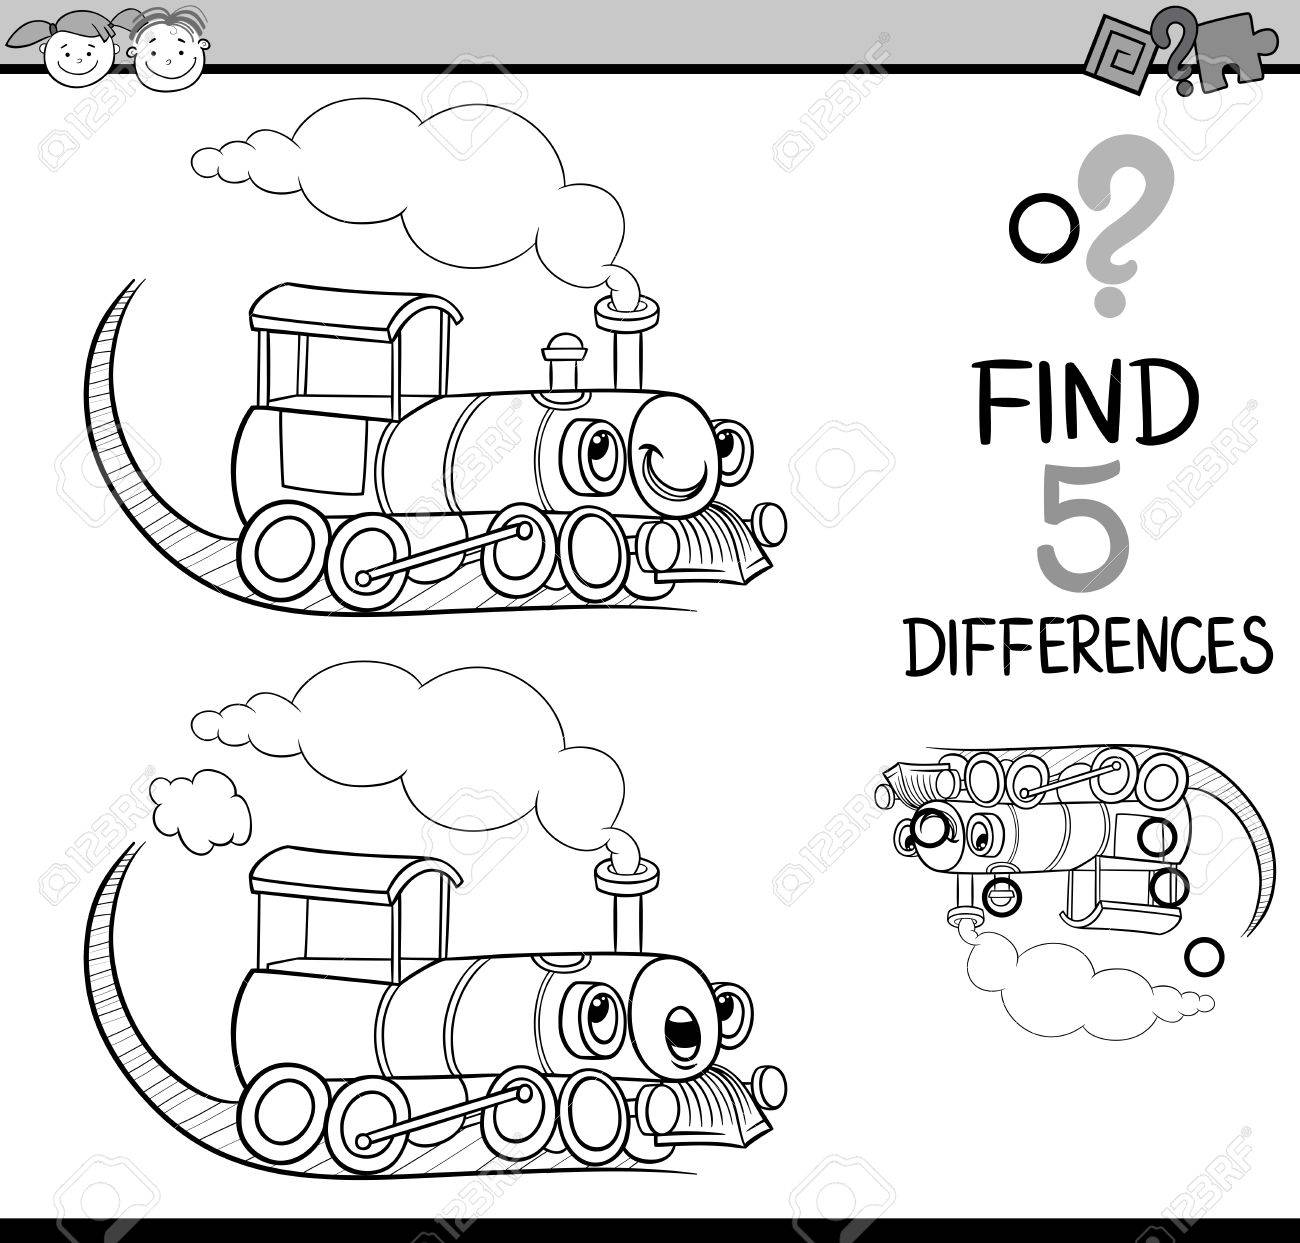 Black And White Cartoon Illustration Finding Differences